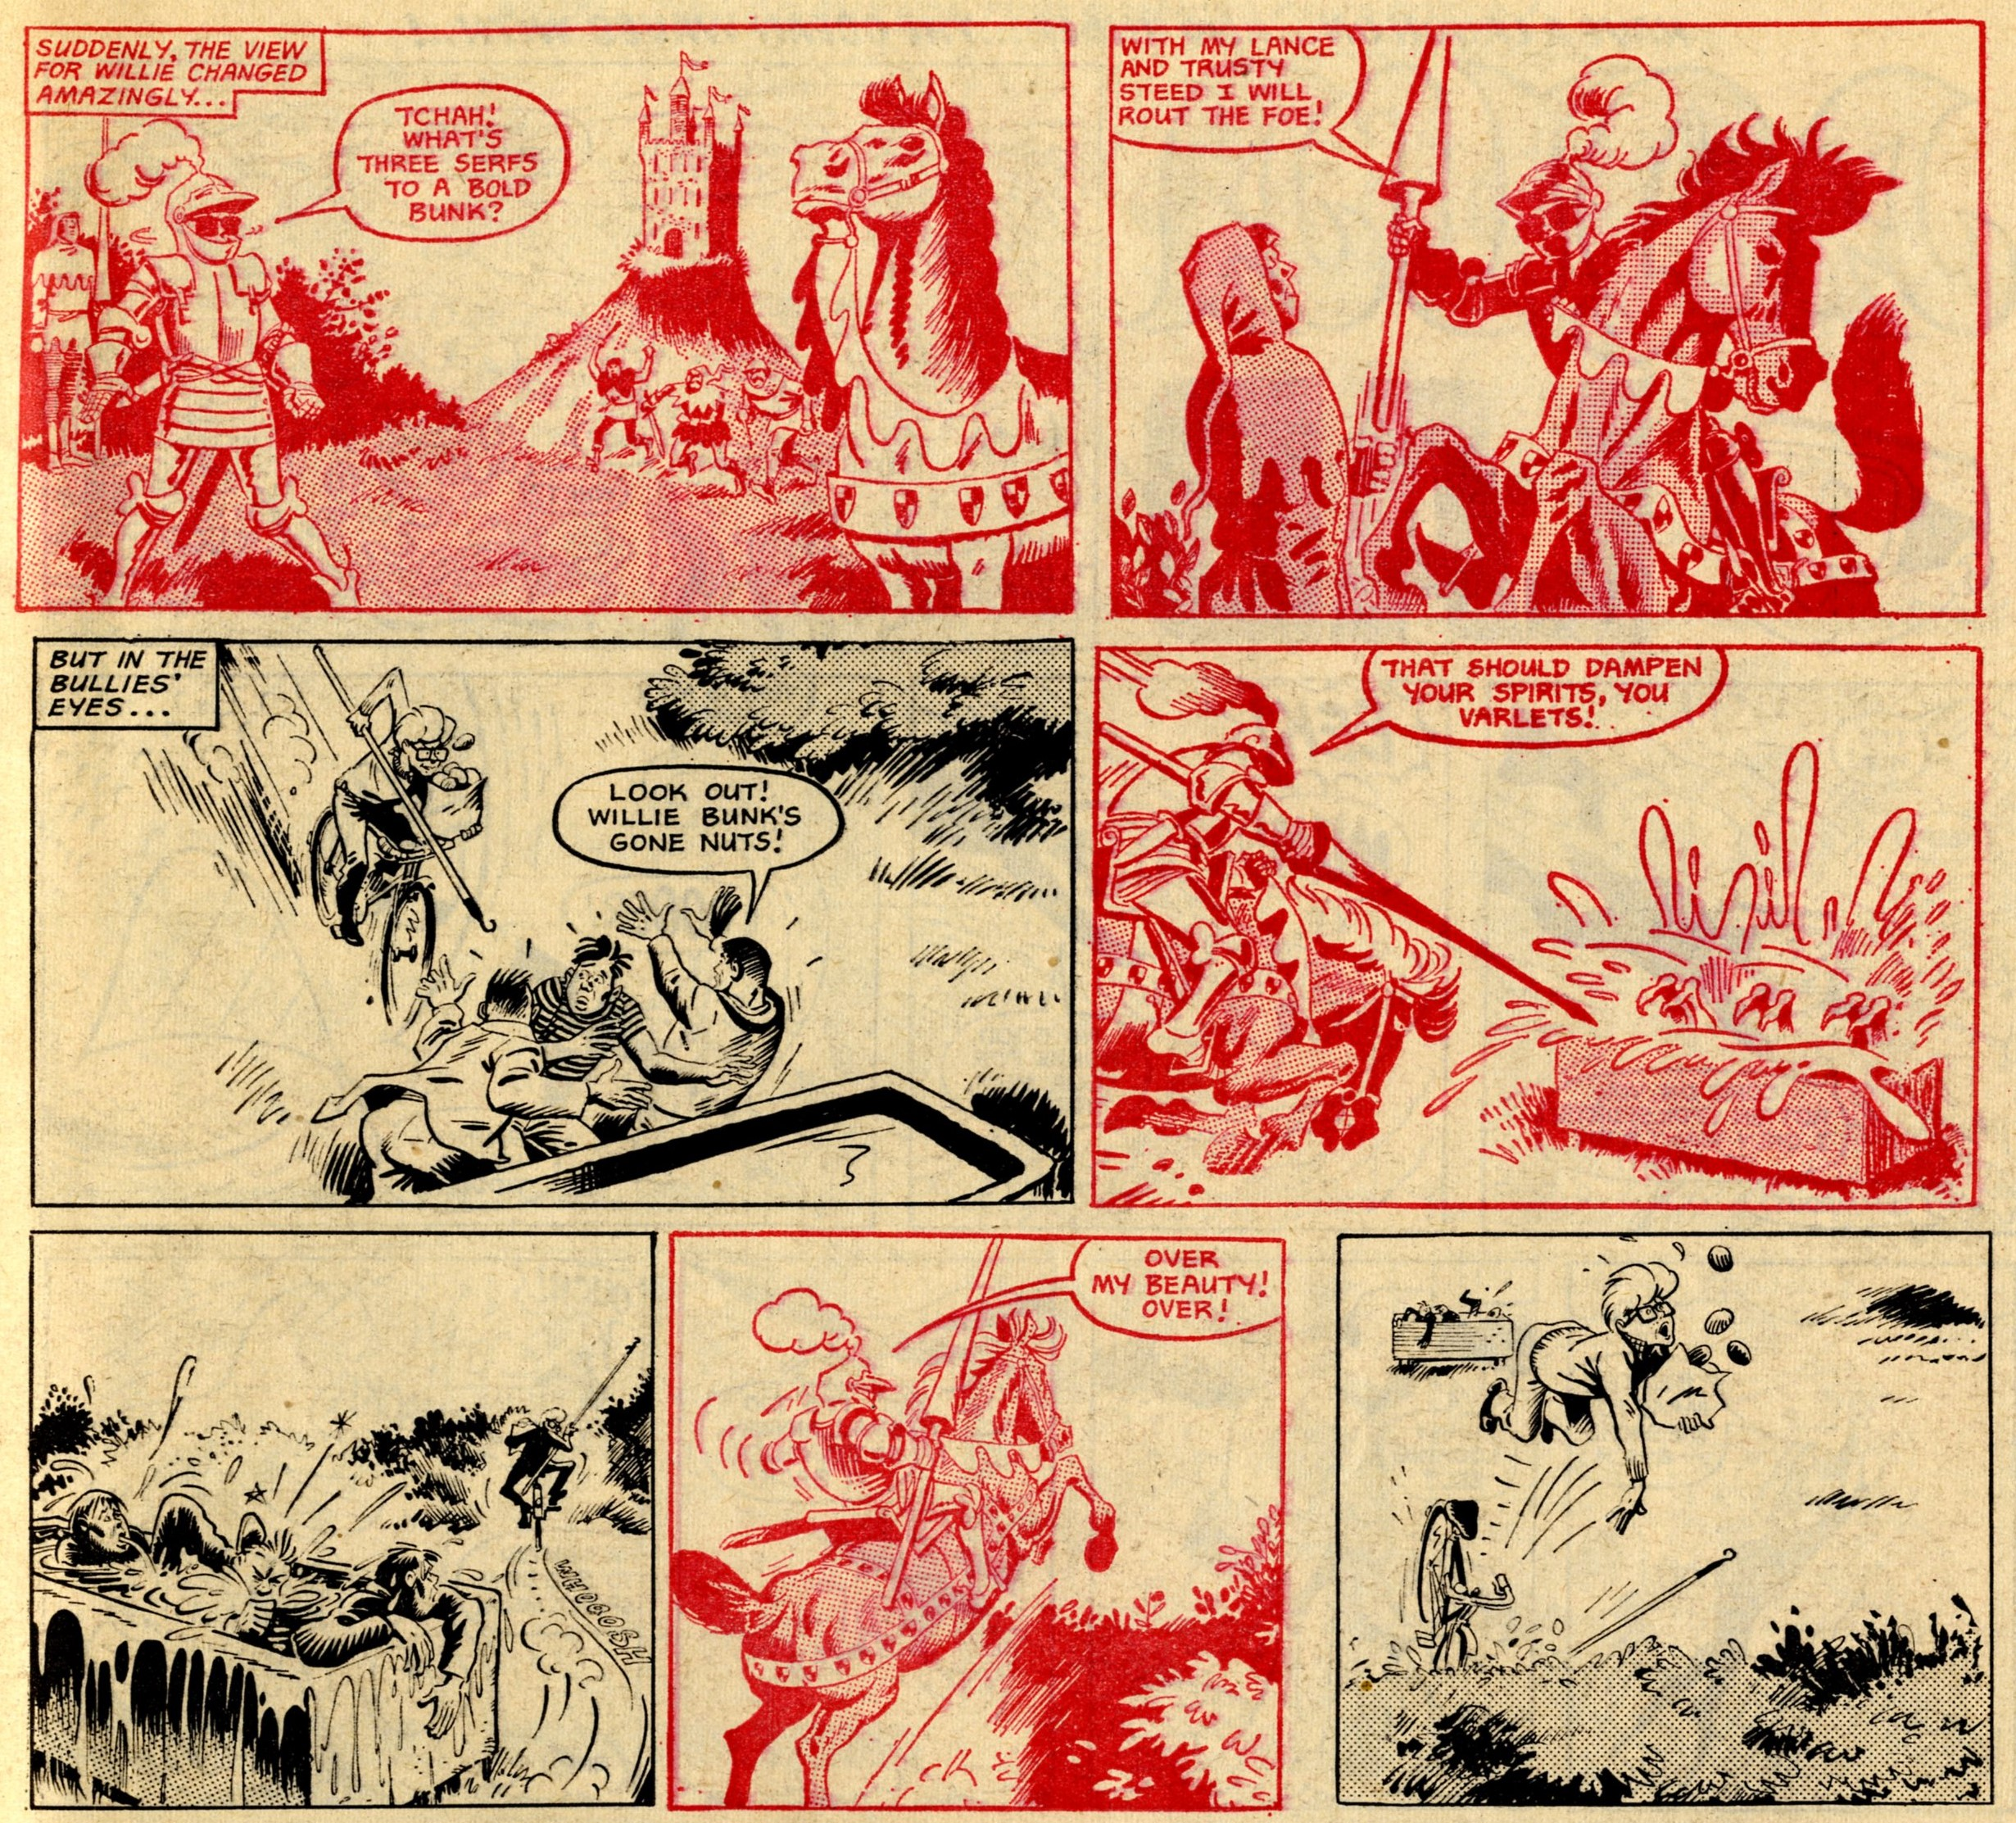 The Spectacular Adventures of Willy Bunk: Frank McDiarmid (artist)